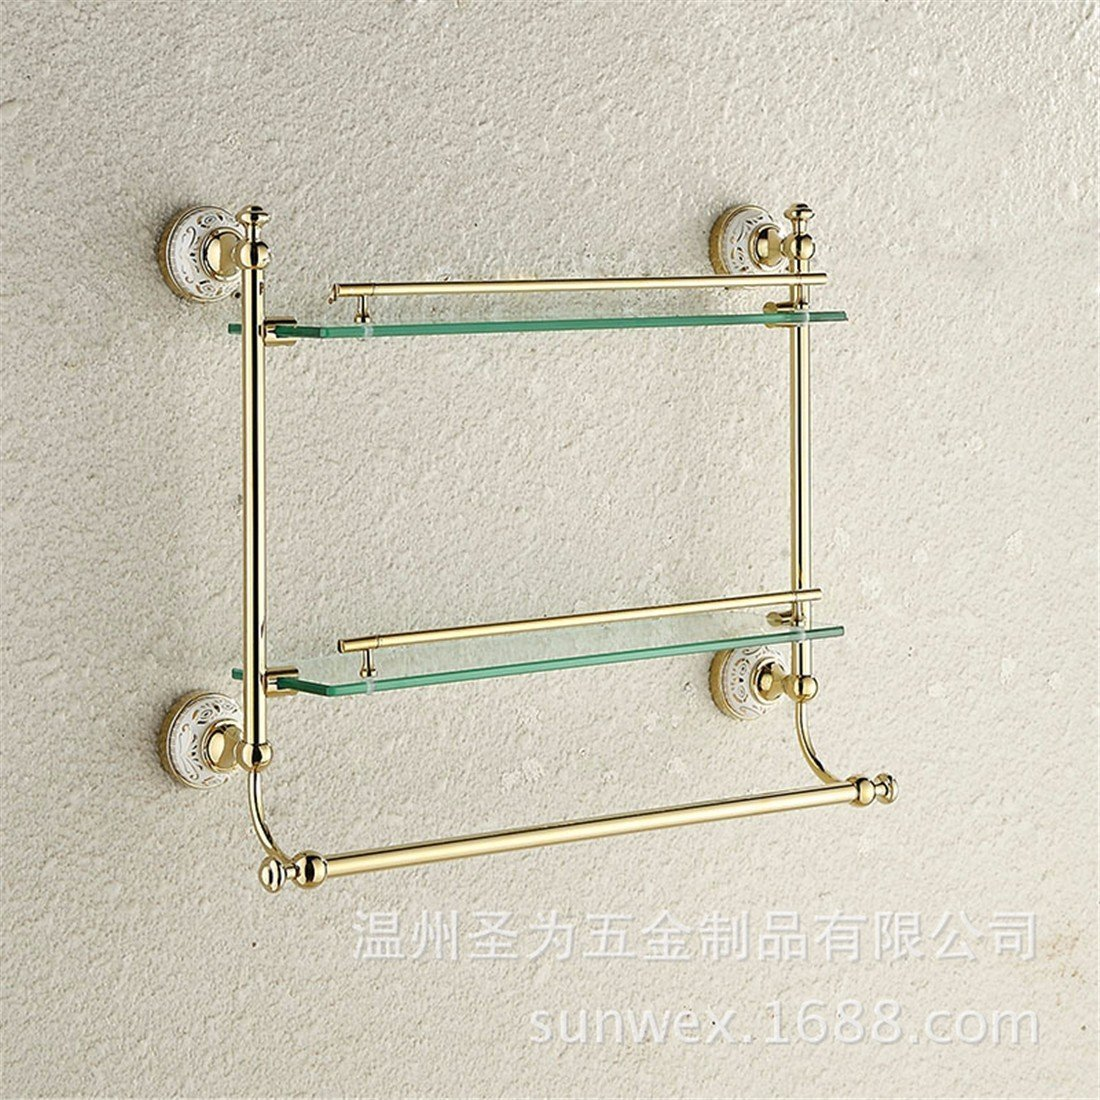 LAONA European style gold zinc alloy ceramic base, bathroom fittings, toilet paper rack, towel rack,Rack 2